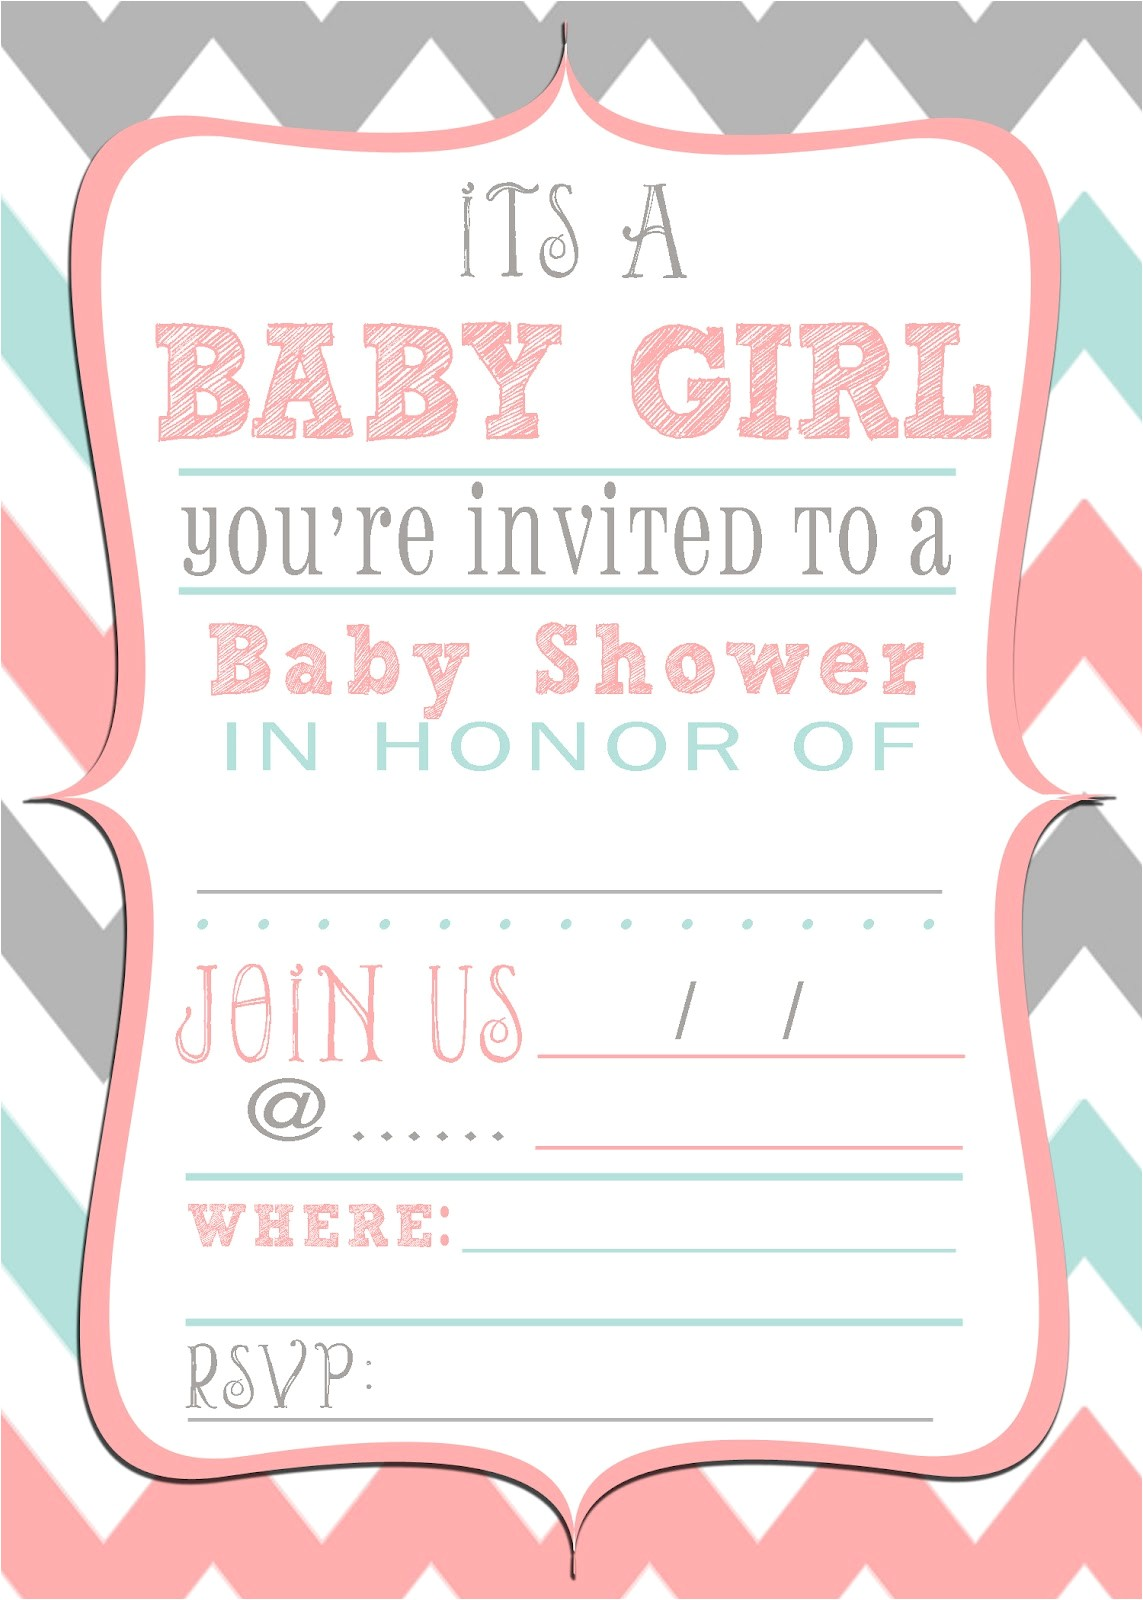 Free Printable Baby Shower Invitations for A Girl Mrs This and that Baby Shower Banner Free Downloads